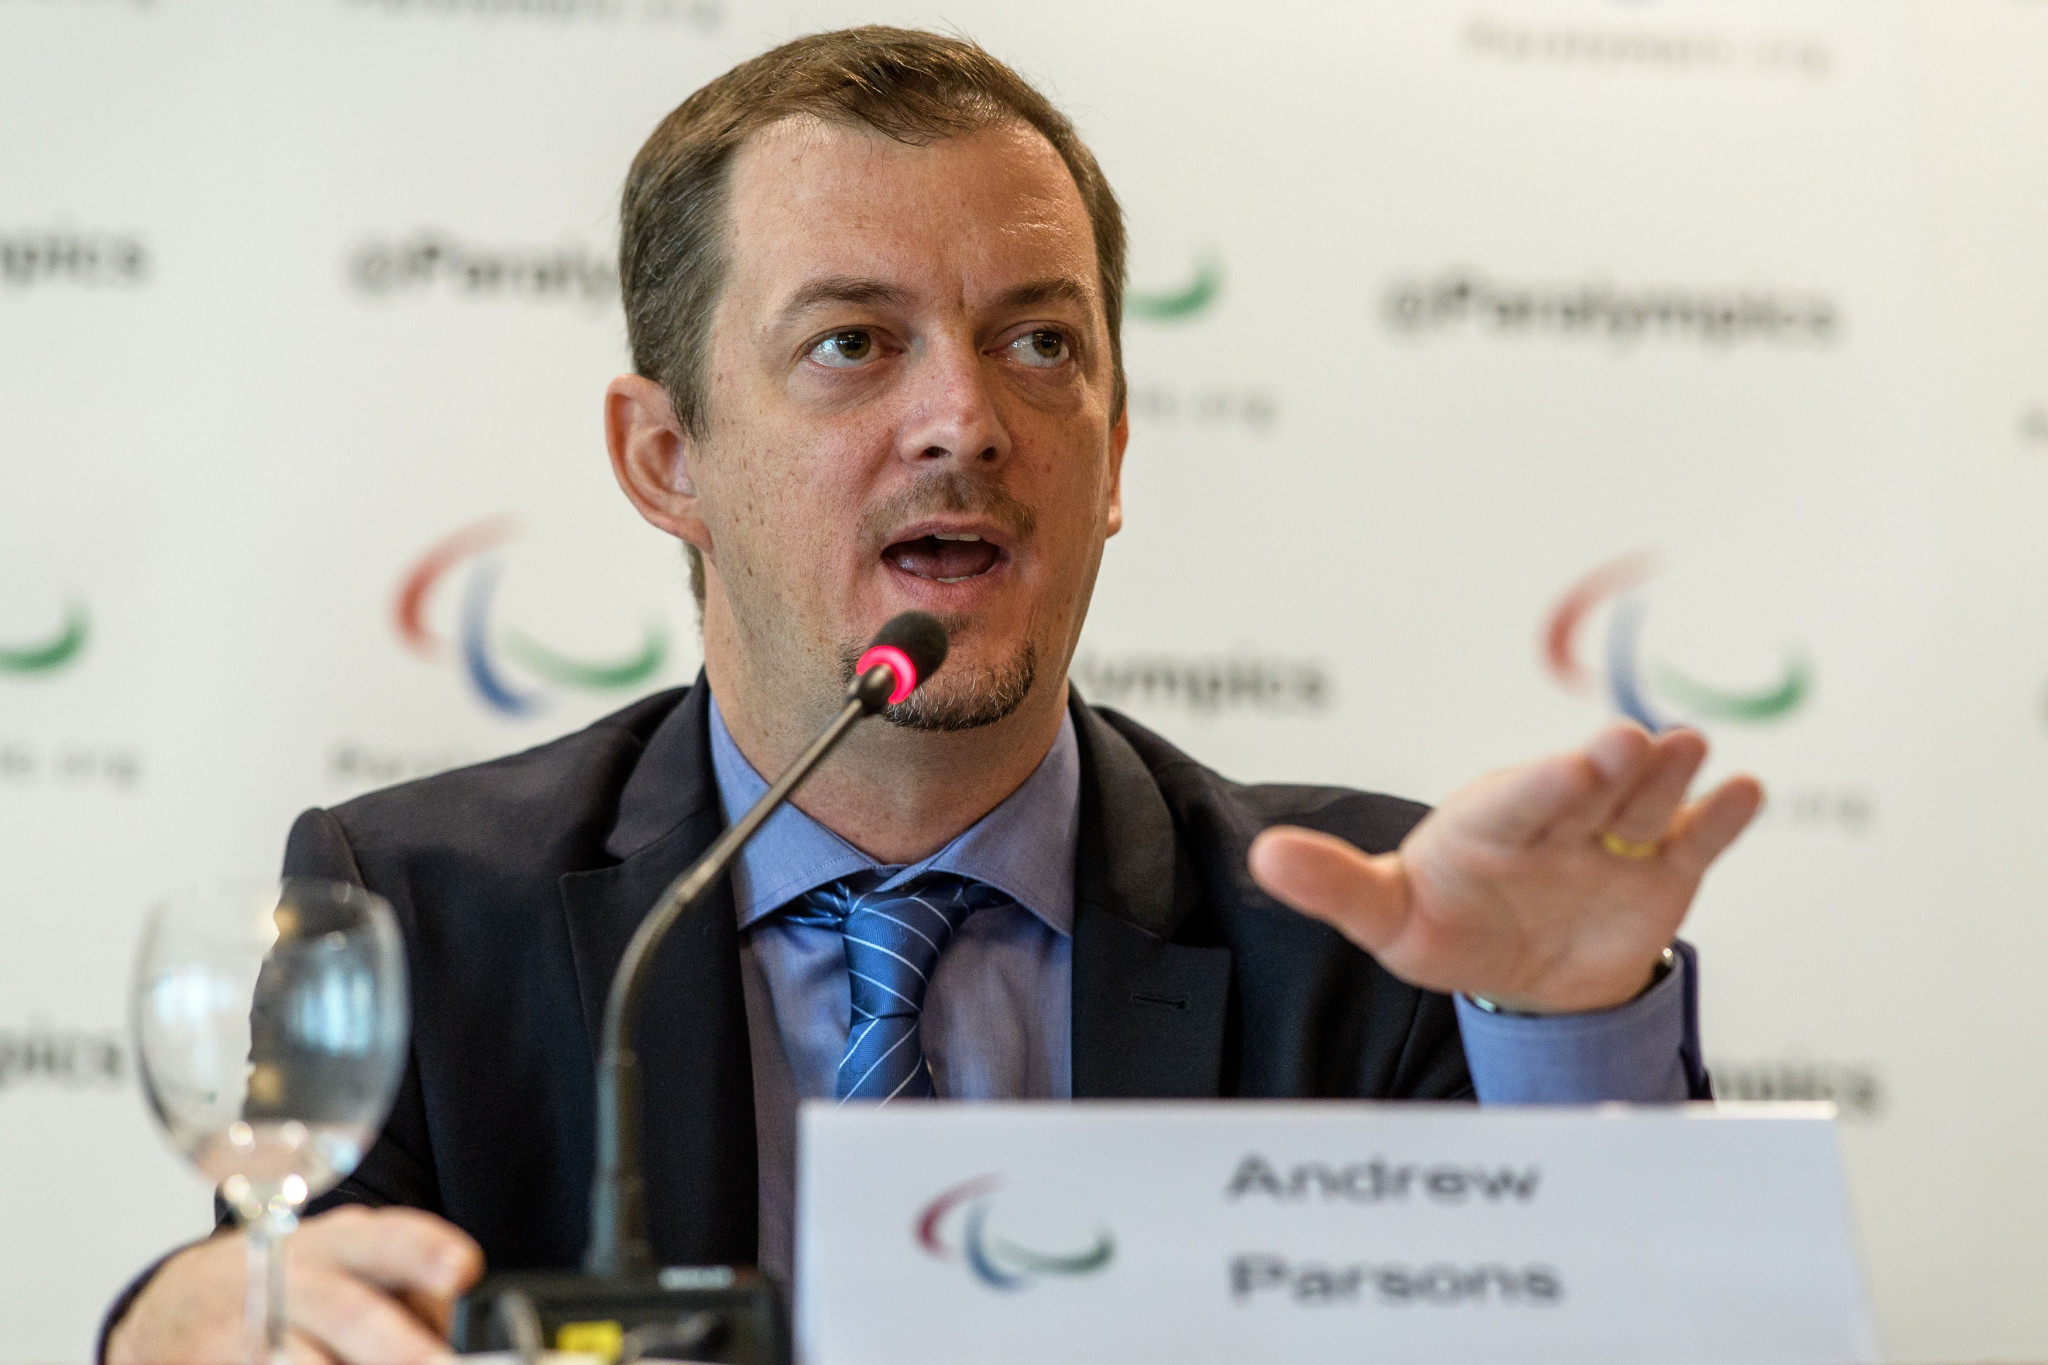 IPC President Andrew Parsons is optimistic that NPC North Korea will accept the invitation to participate at the Pyeongchang 2018 Winter Paralympics ©Getty Images